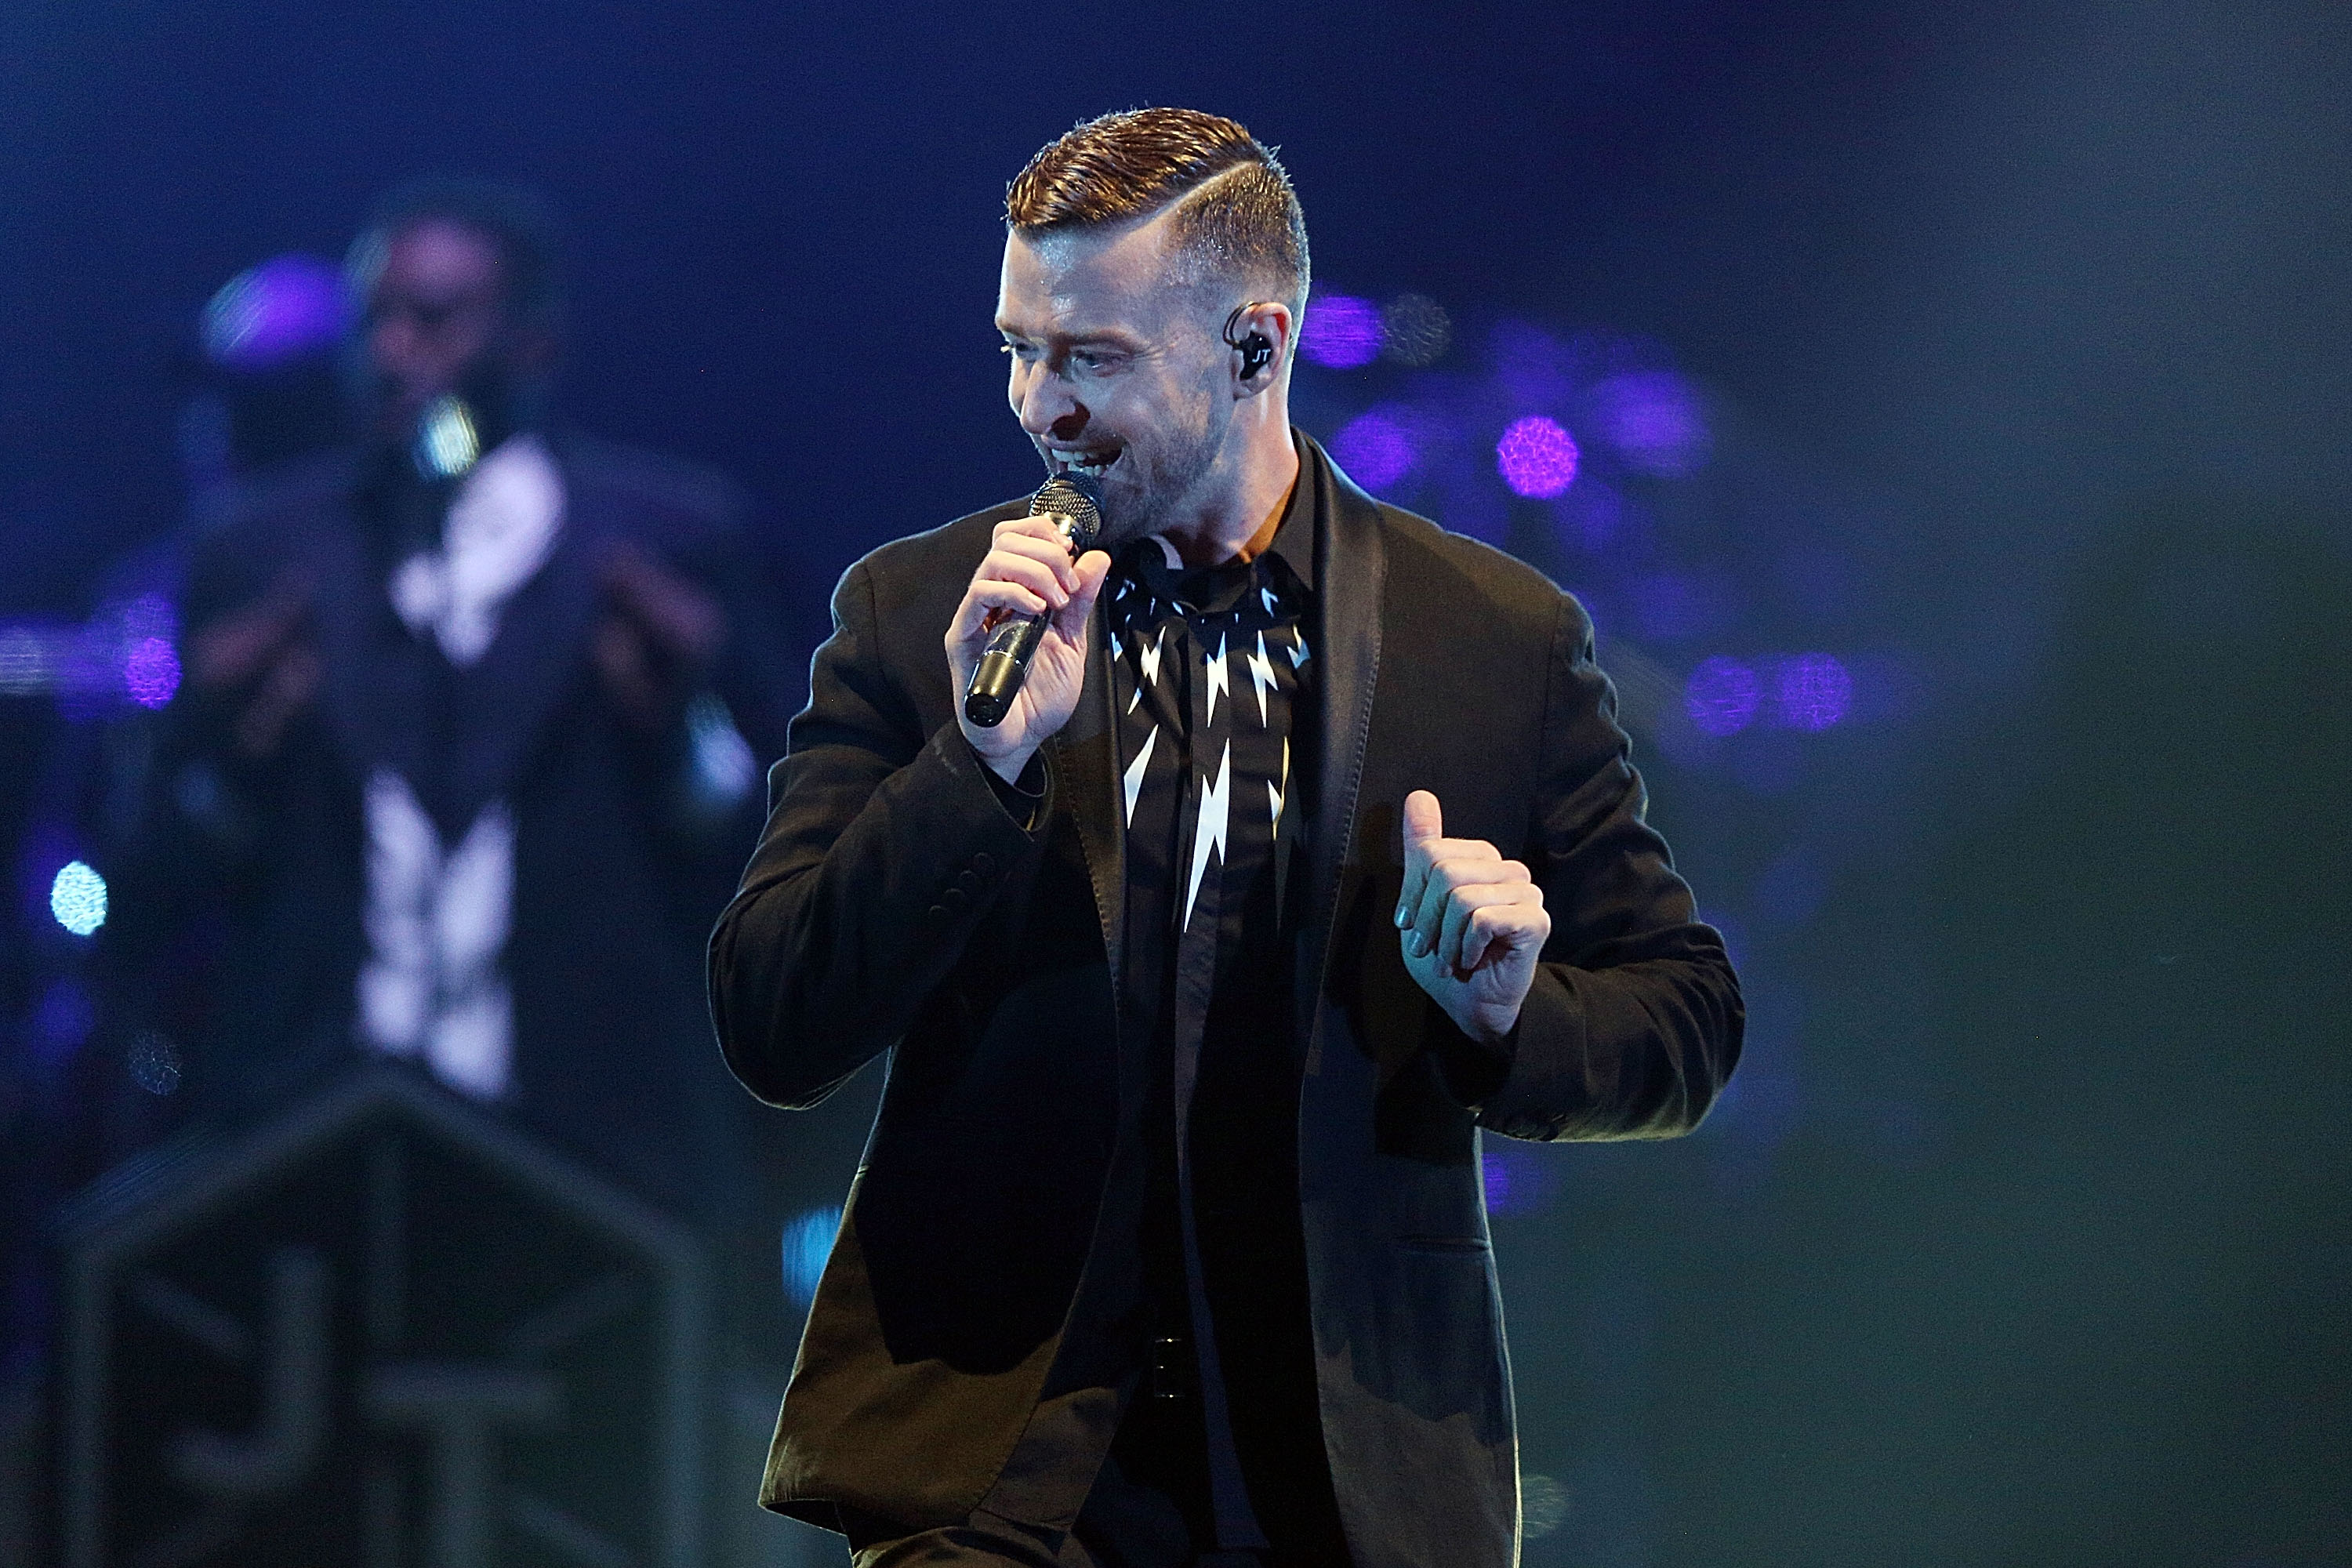 Justin Timberlake Performs Live In Melbourne